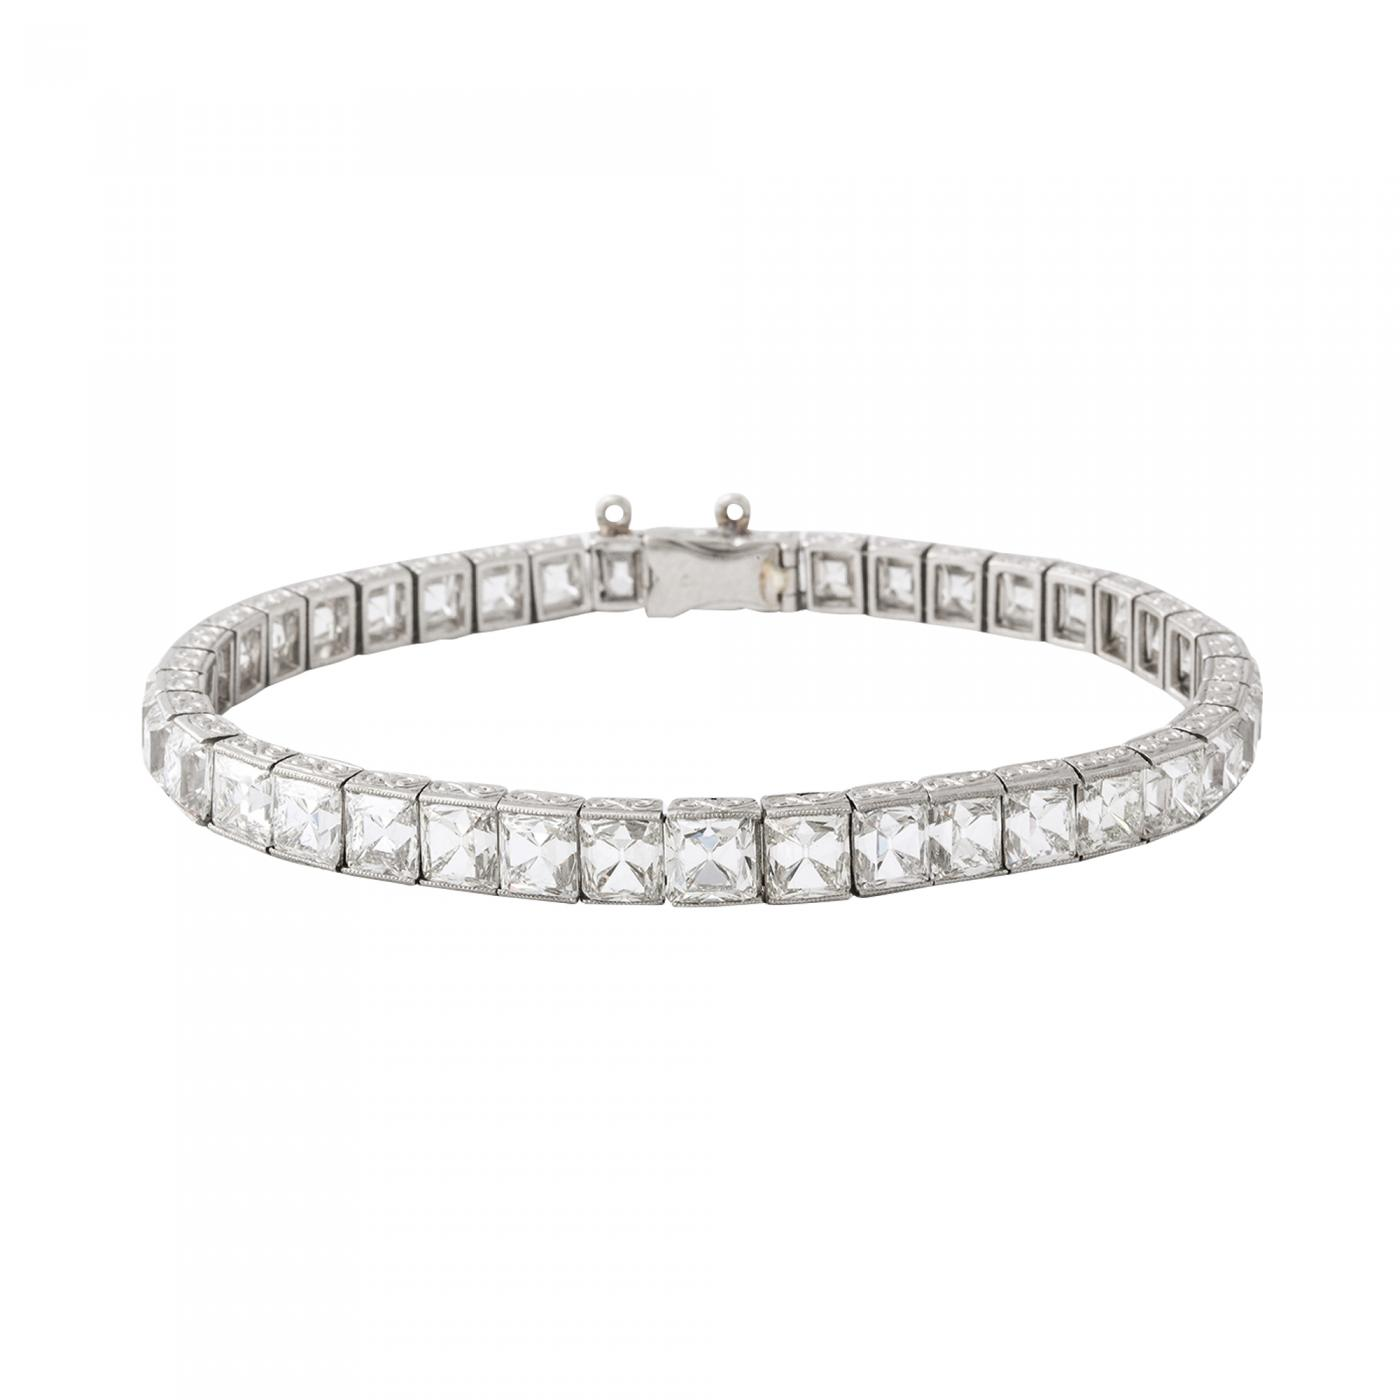 0334cea91 Tiffany and Co. - Antique French-cut Diamond Bracelet by Tiffany & Co.